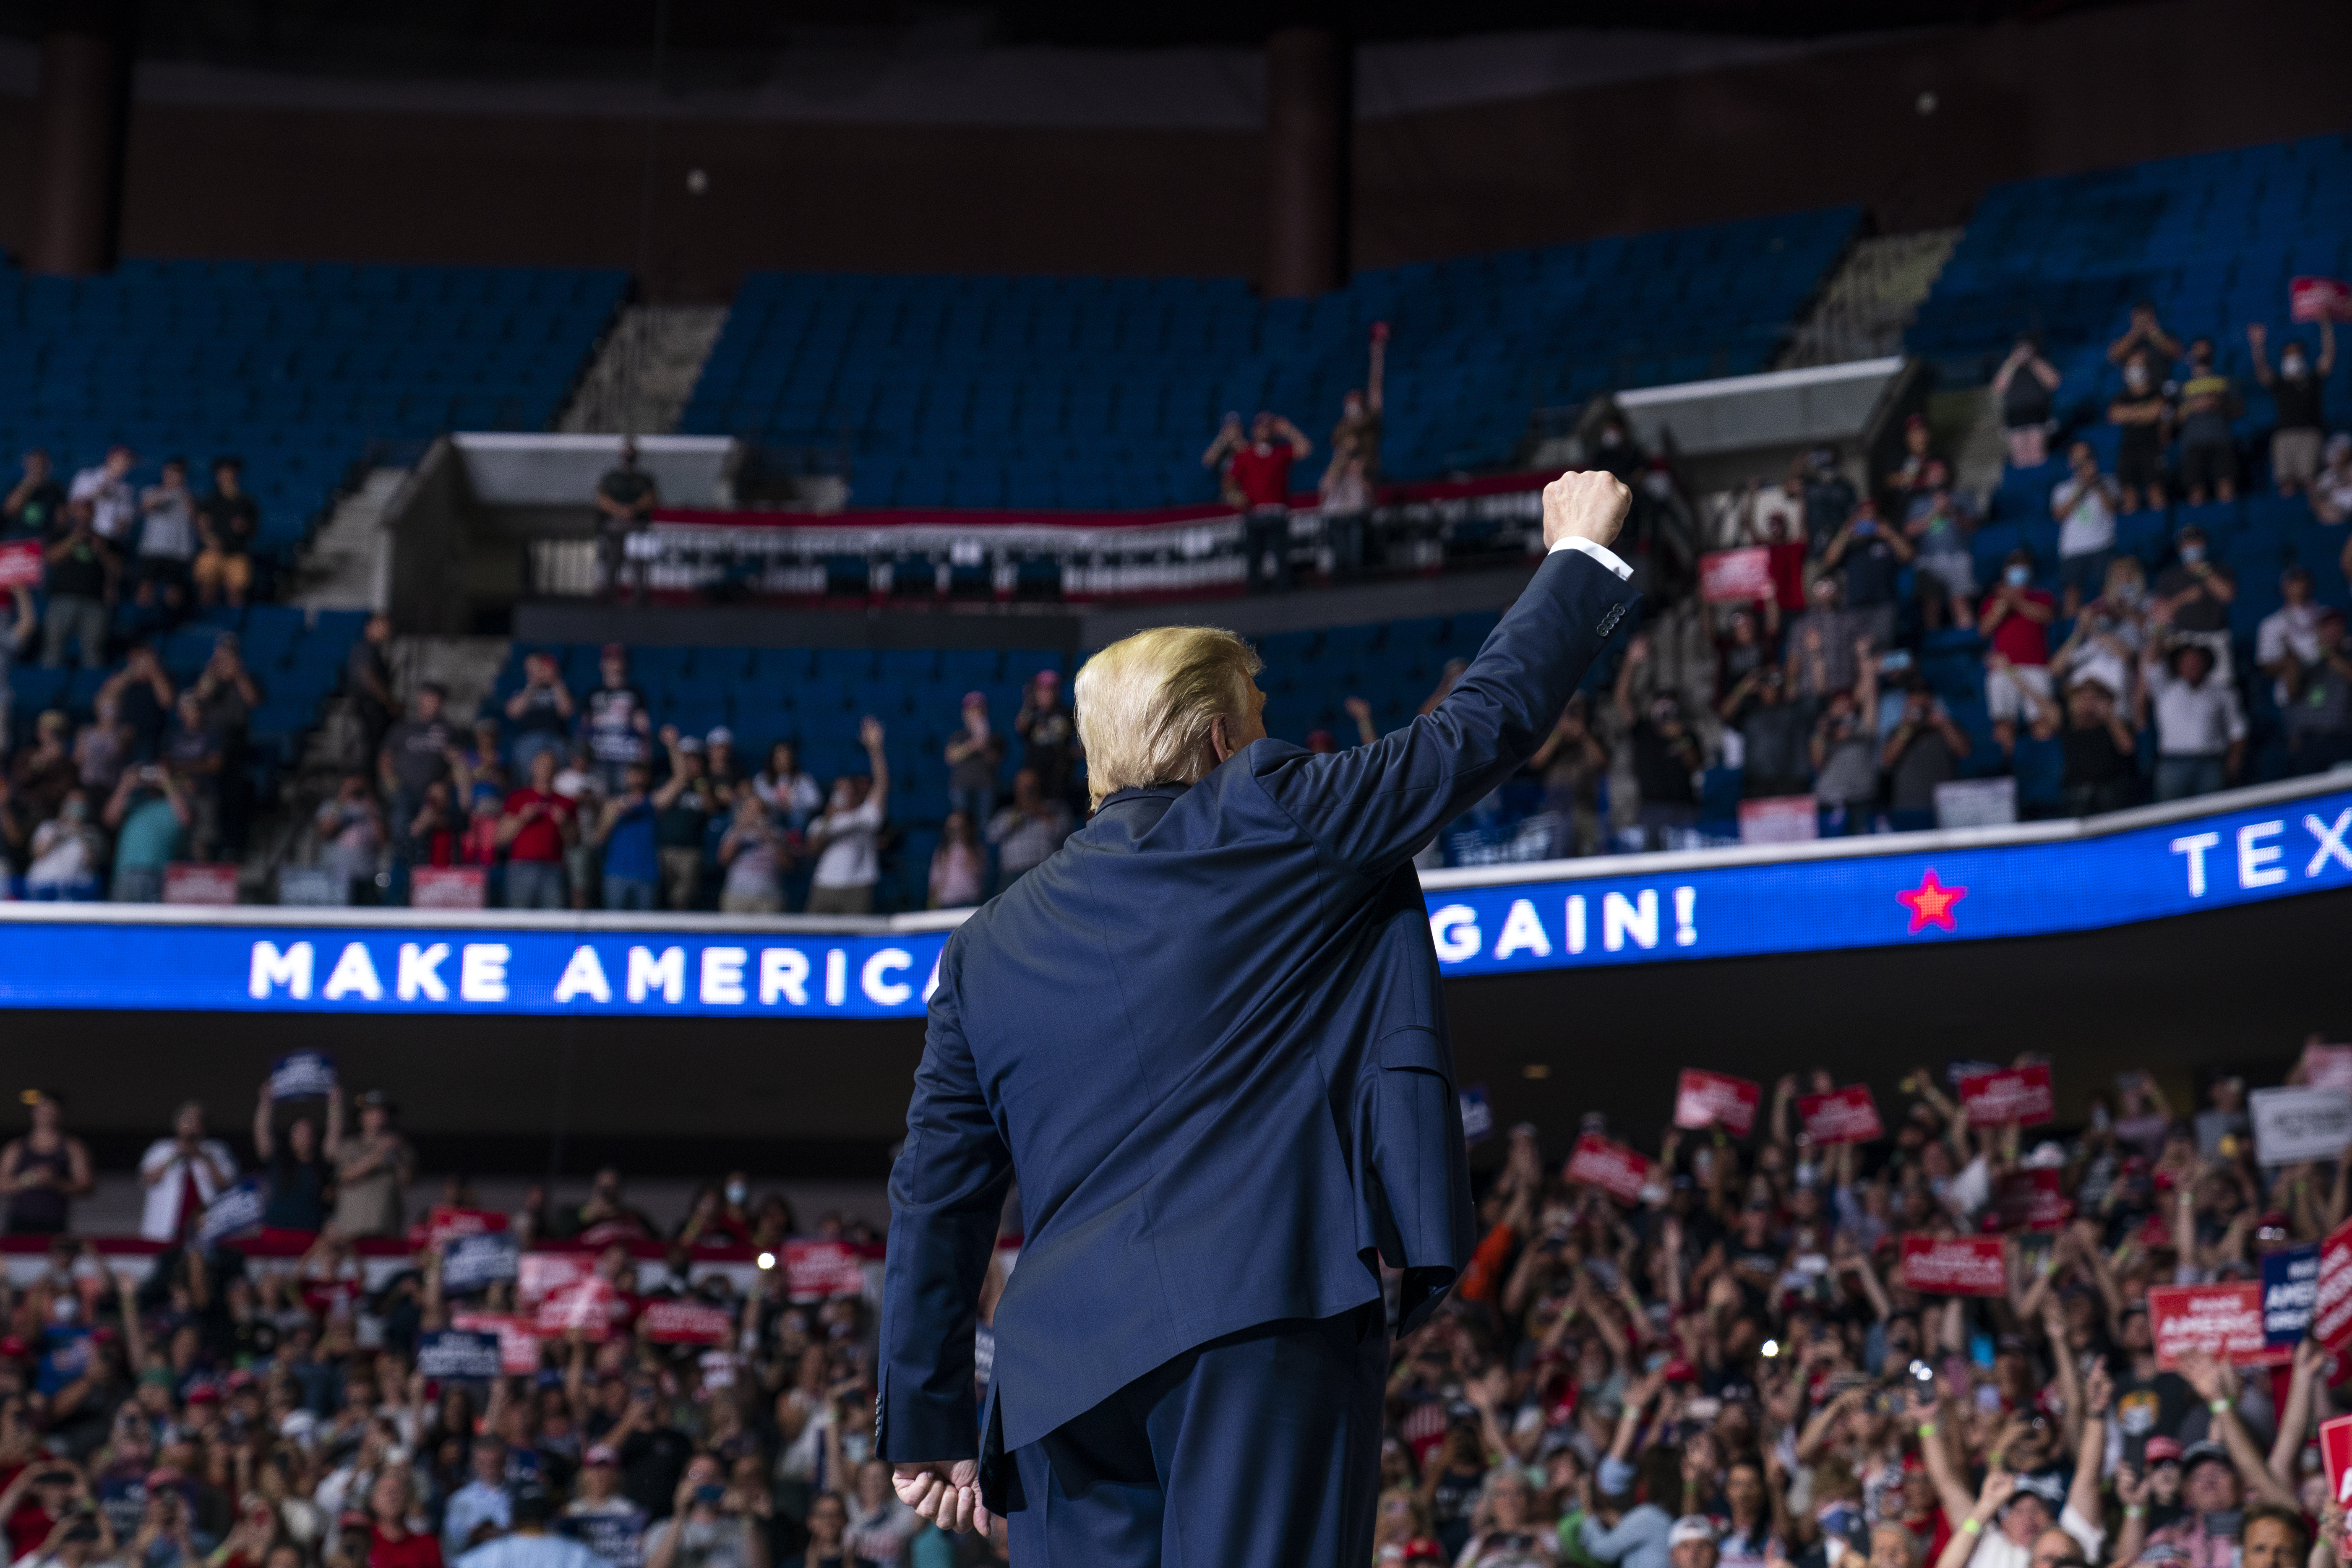 President Donald Trump arrives on stage to speak at a campaign rally at the BOK Center, on June 20, 2020, in Tulsa, Okla.